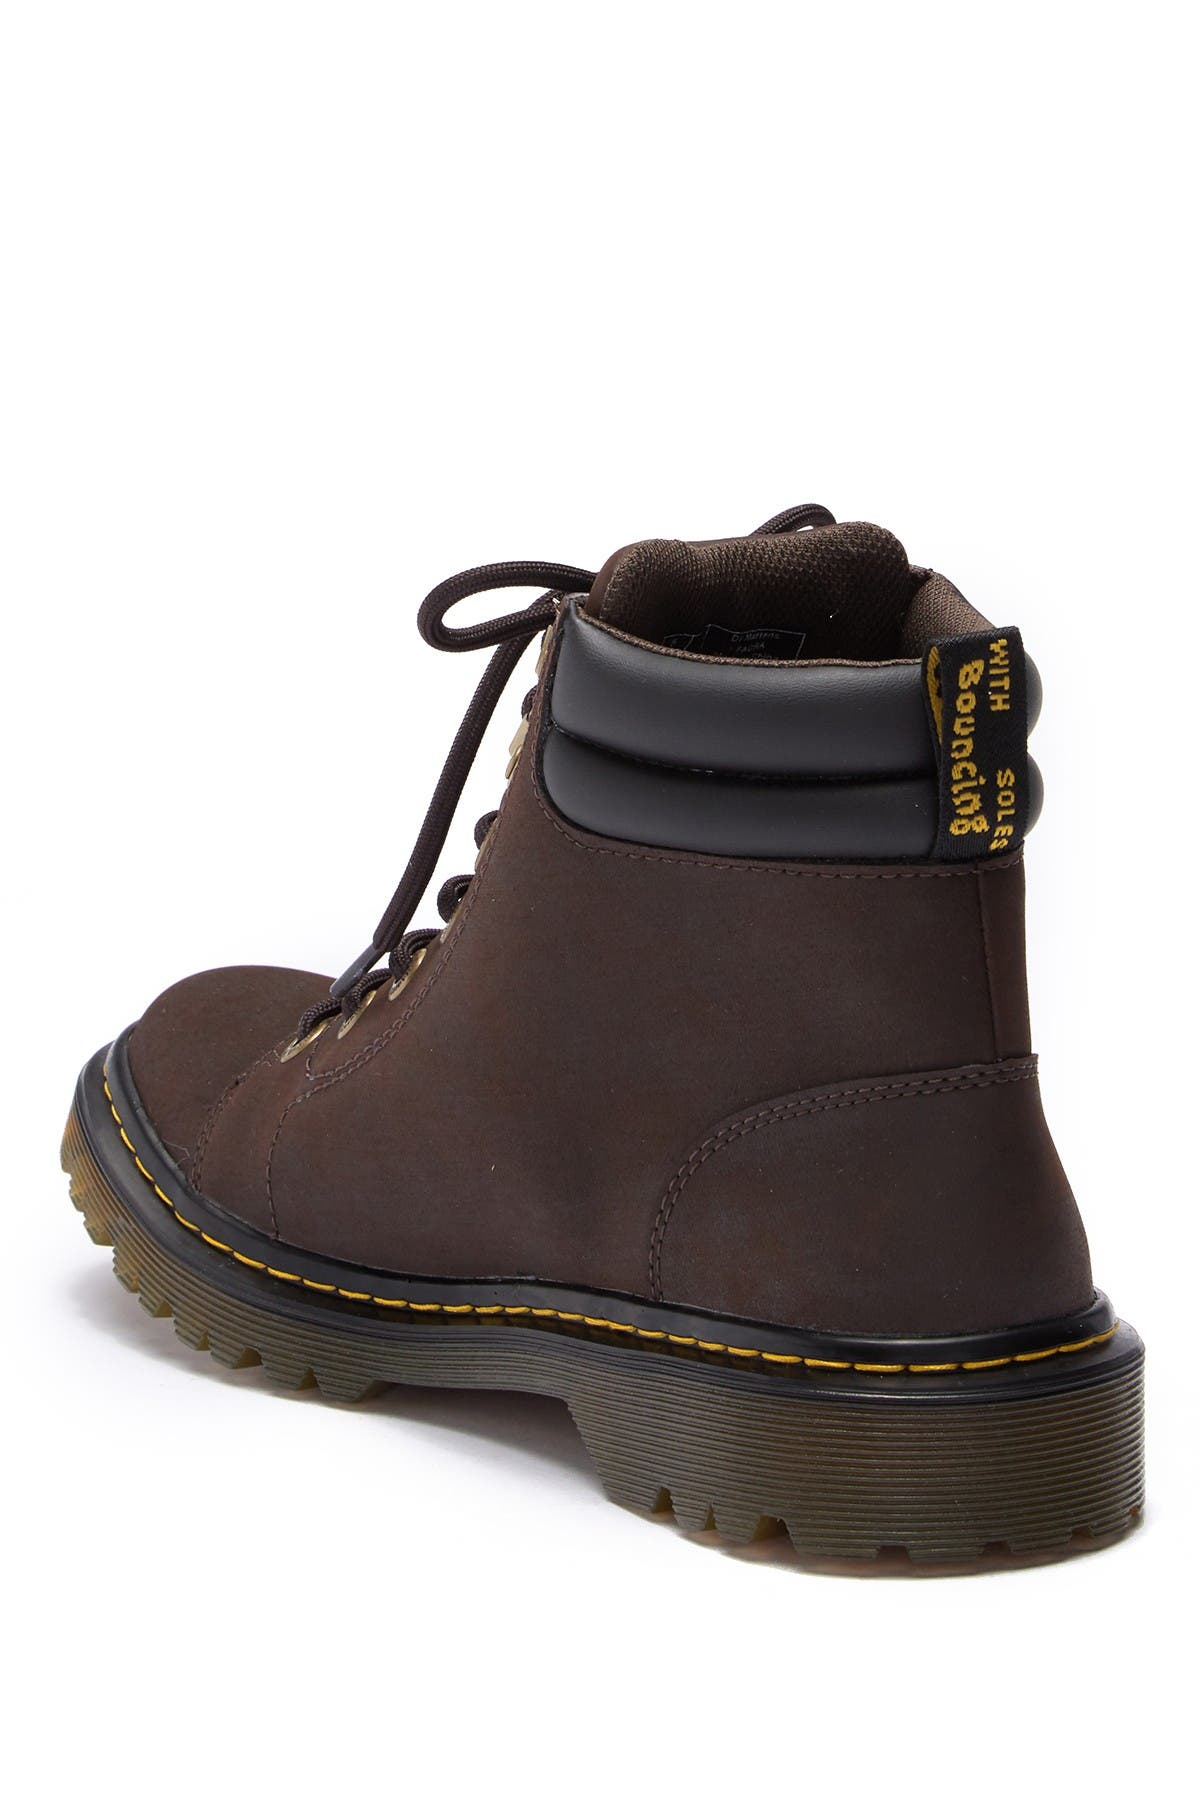 Dr. Martens   Faora Leather Lace Up